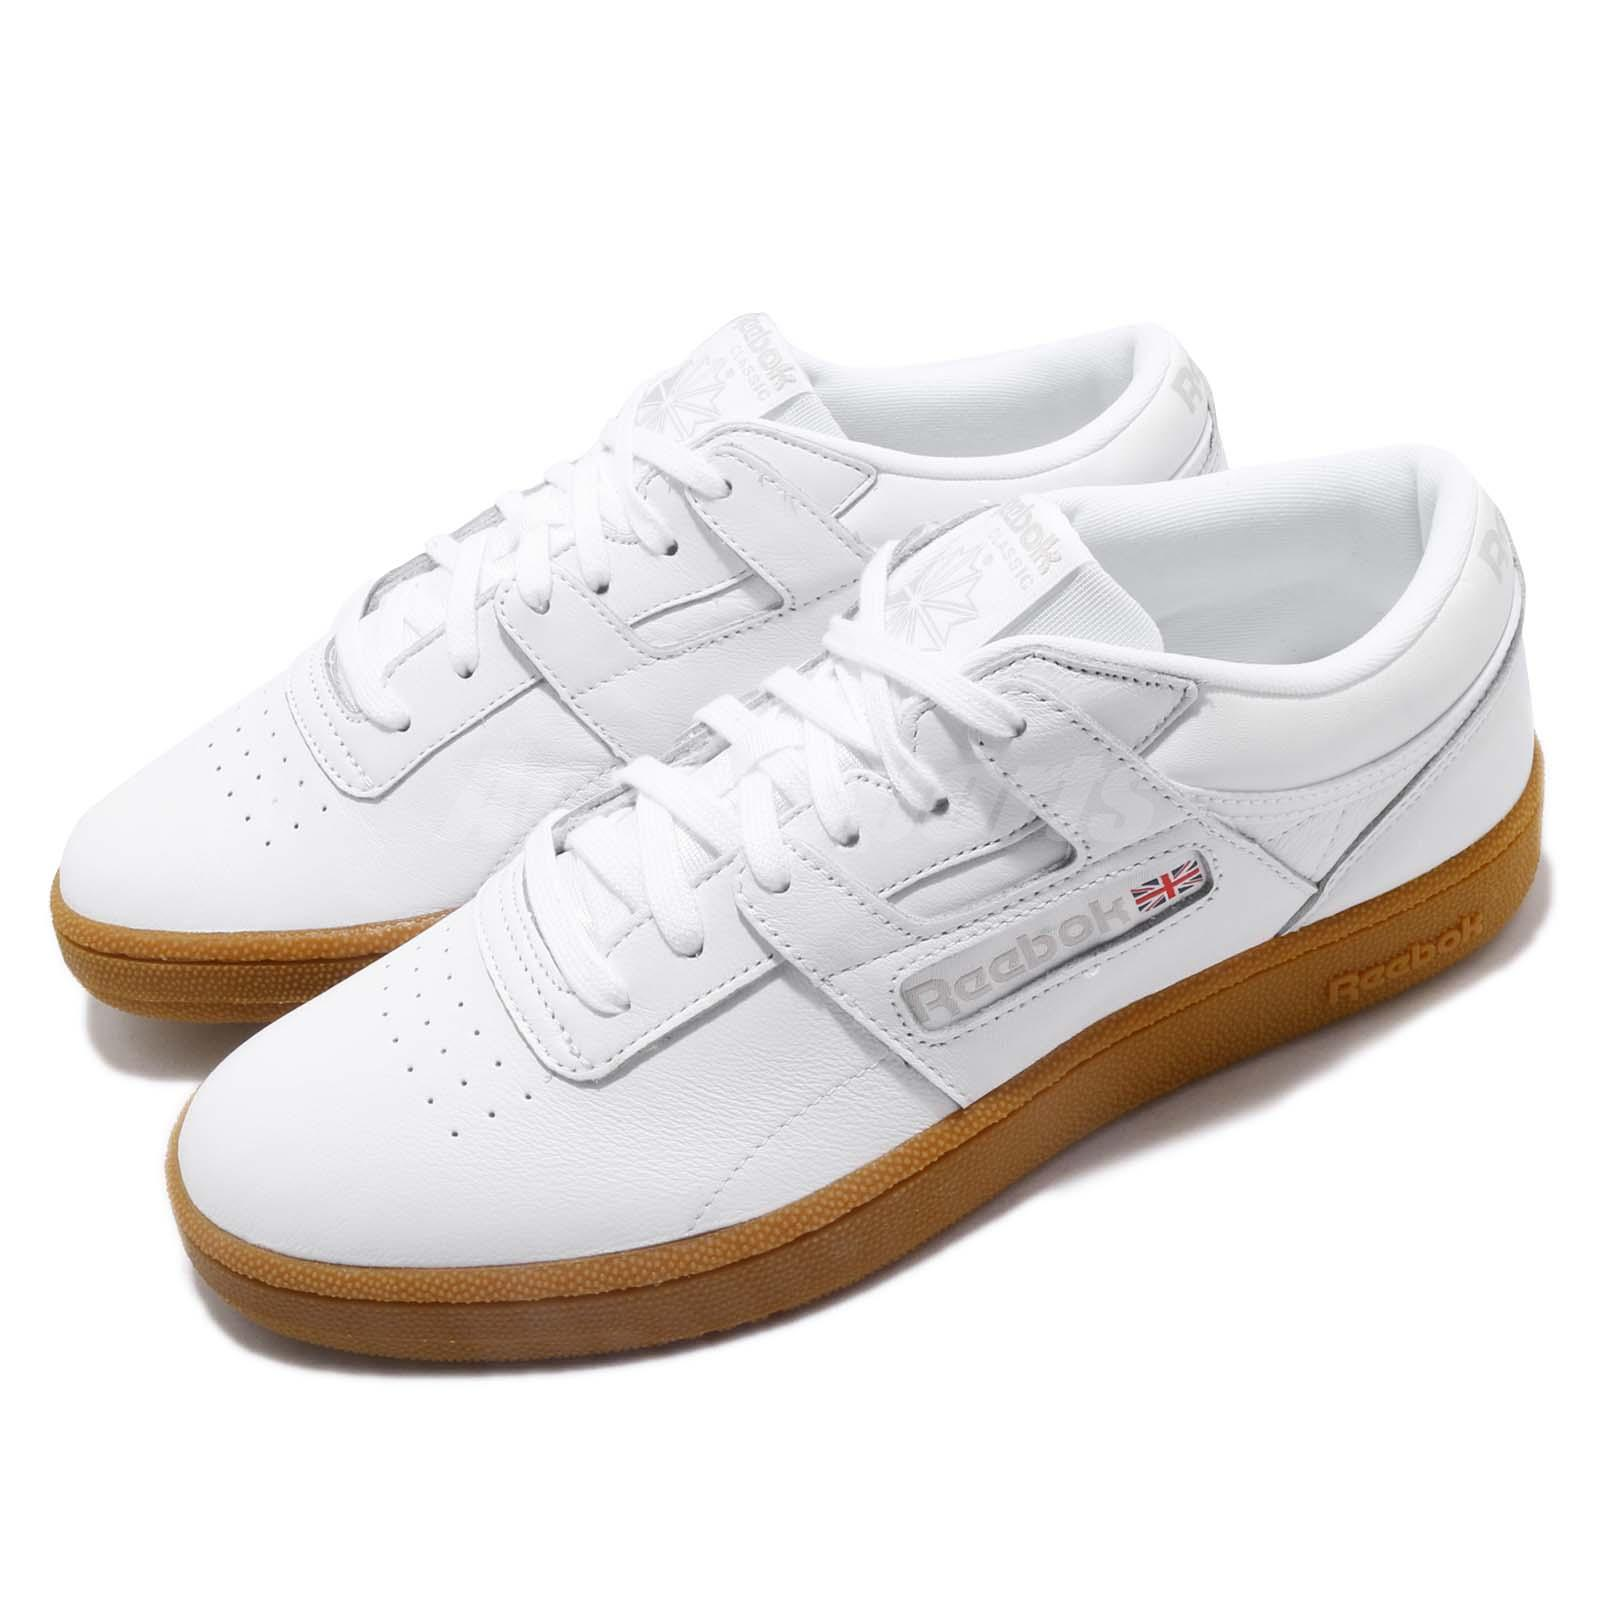 113729e8b79a0 Details about Reebok Club Workout MU White Skull Grey Gum Men Casual Shoes  Sneakers CN5076